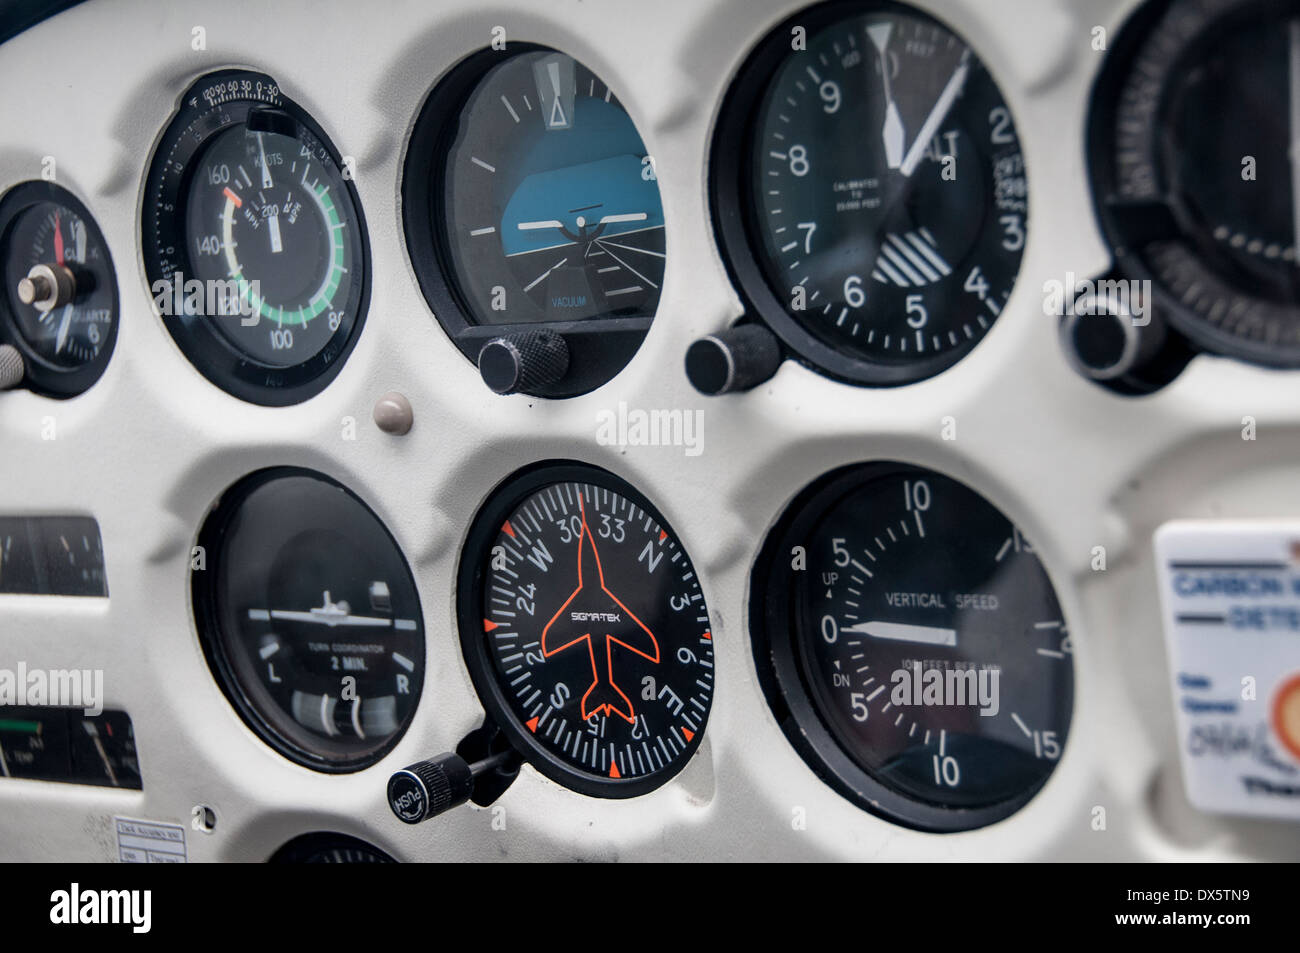 airplane dashboard - Stock Image